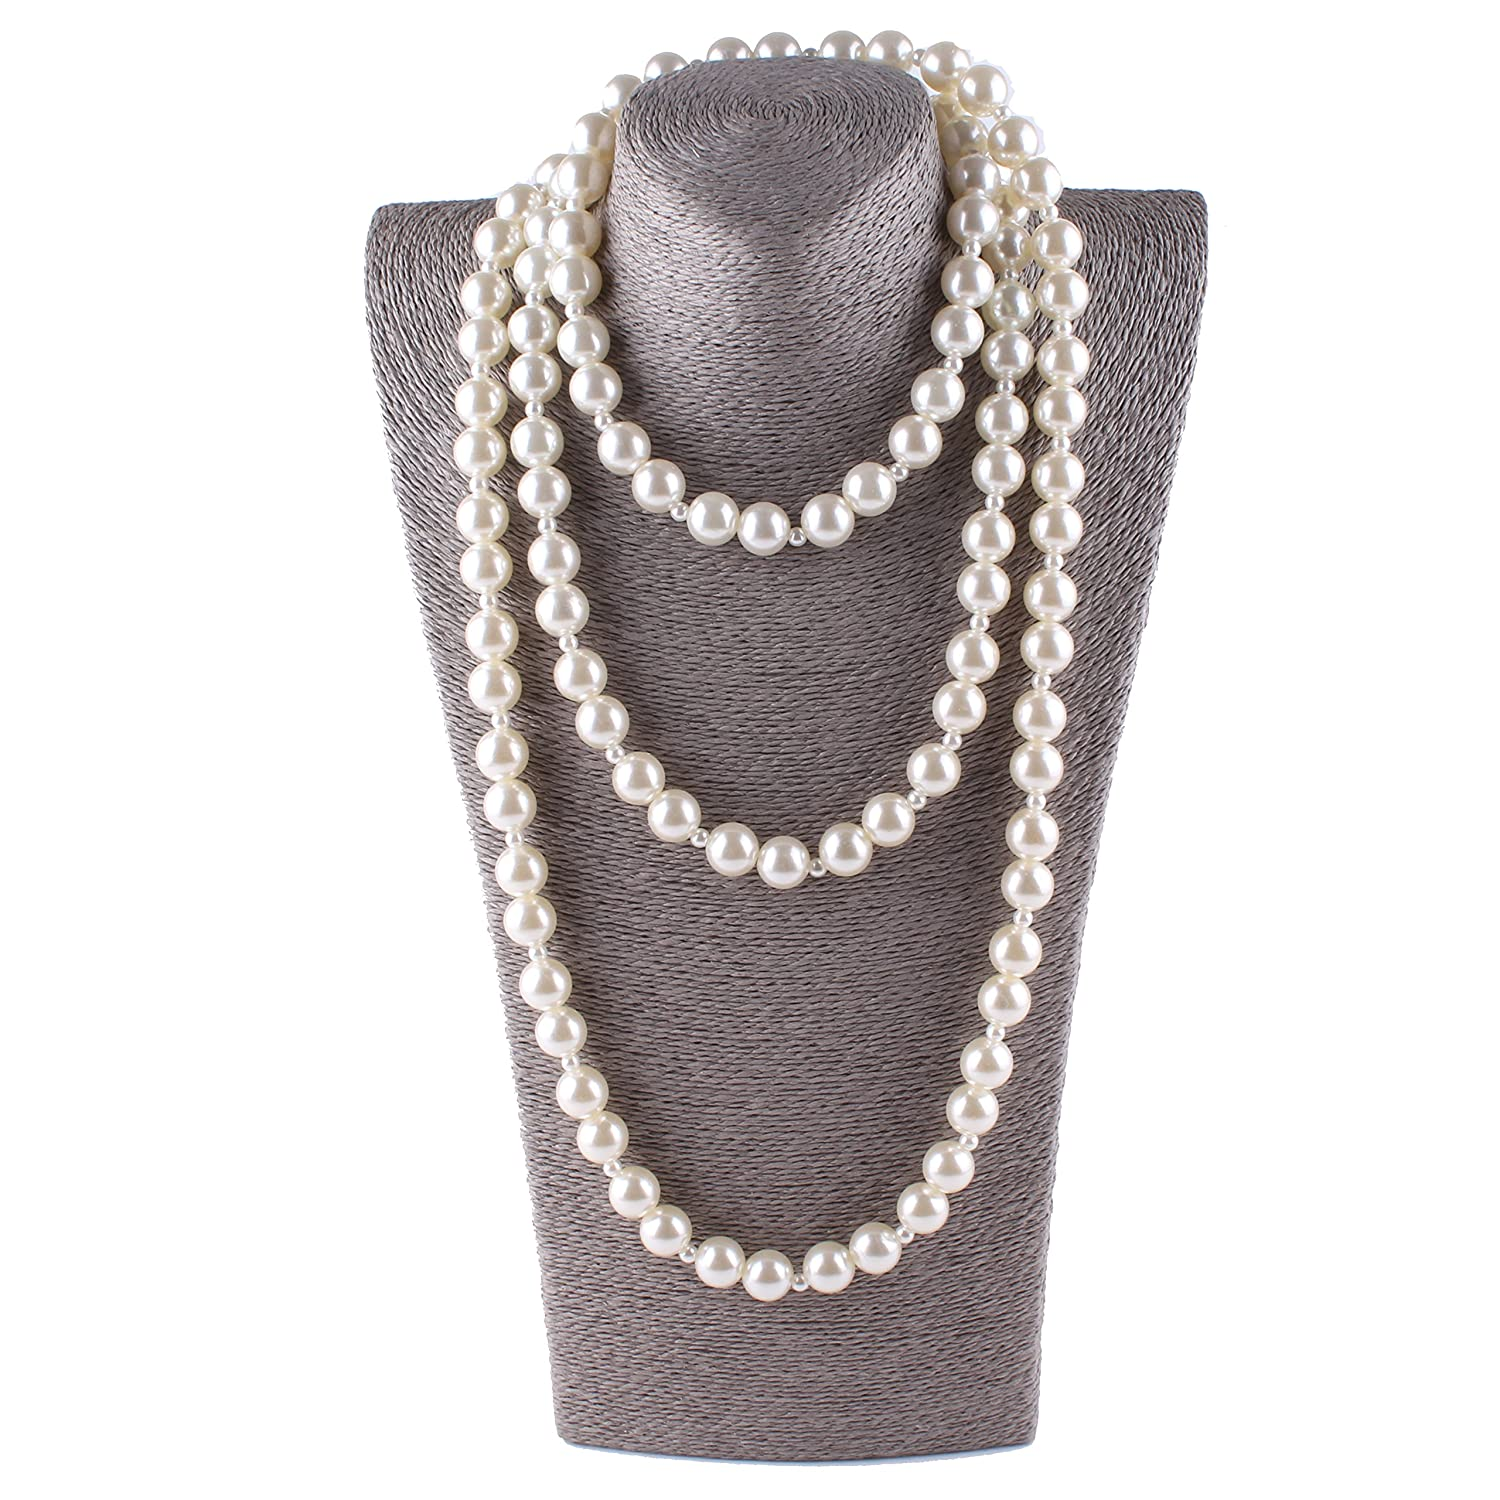 Aibei Pearl Flapper Beads Necklace Multilayer Lvory Strand Chain women's jewelry 71 China ZZXL007